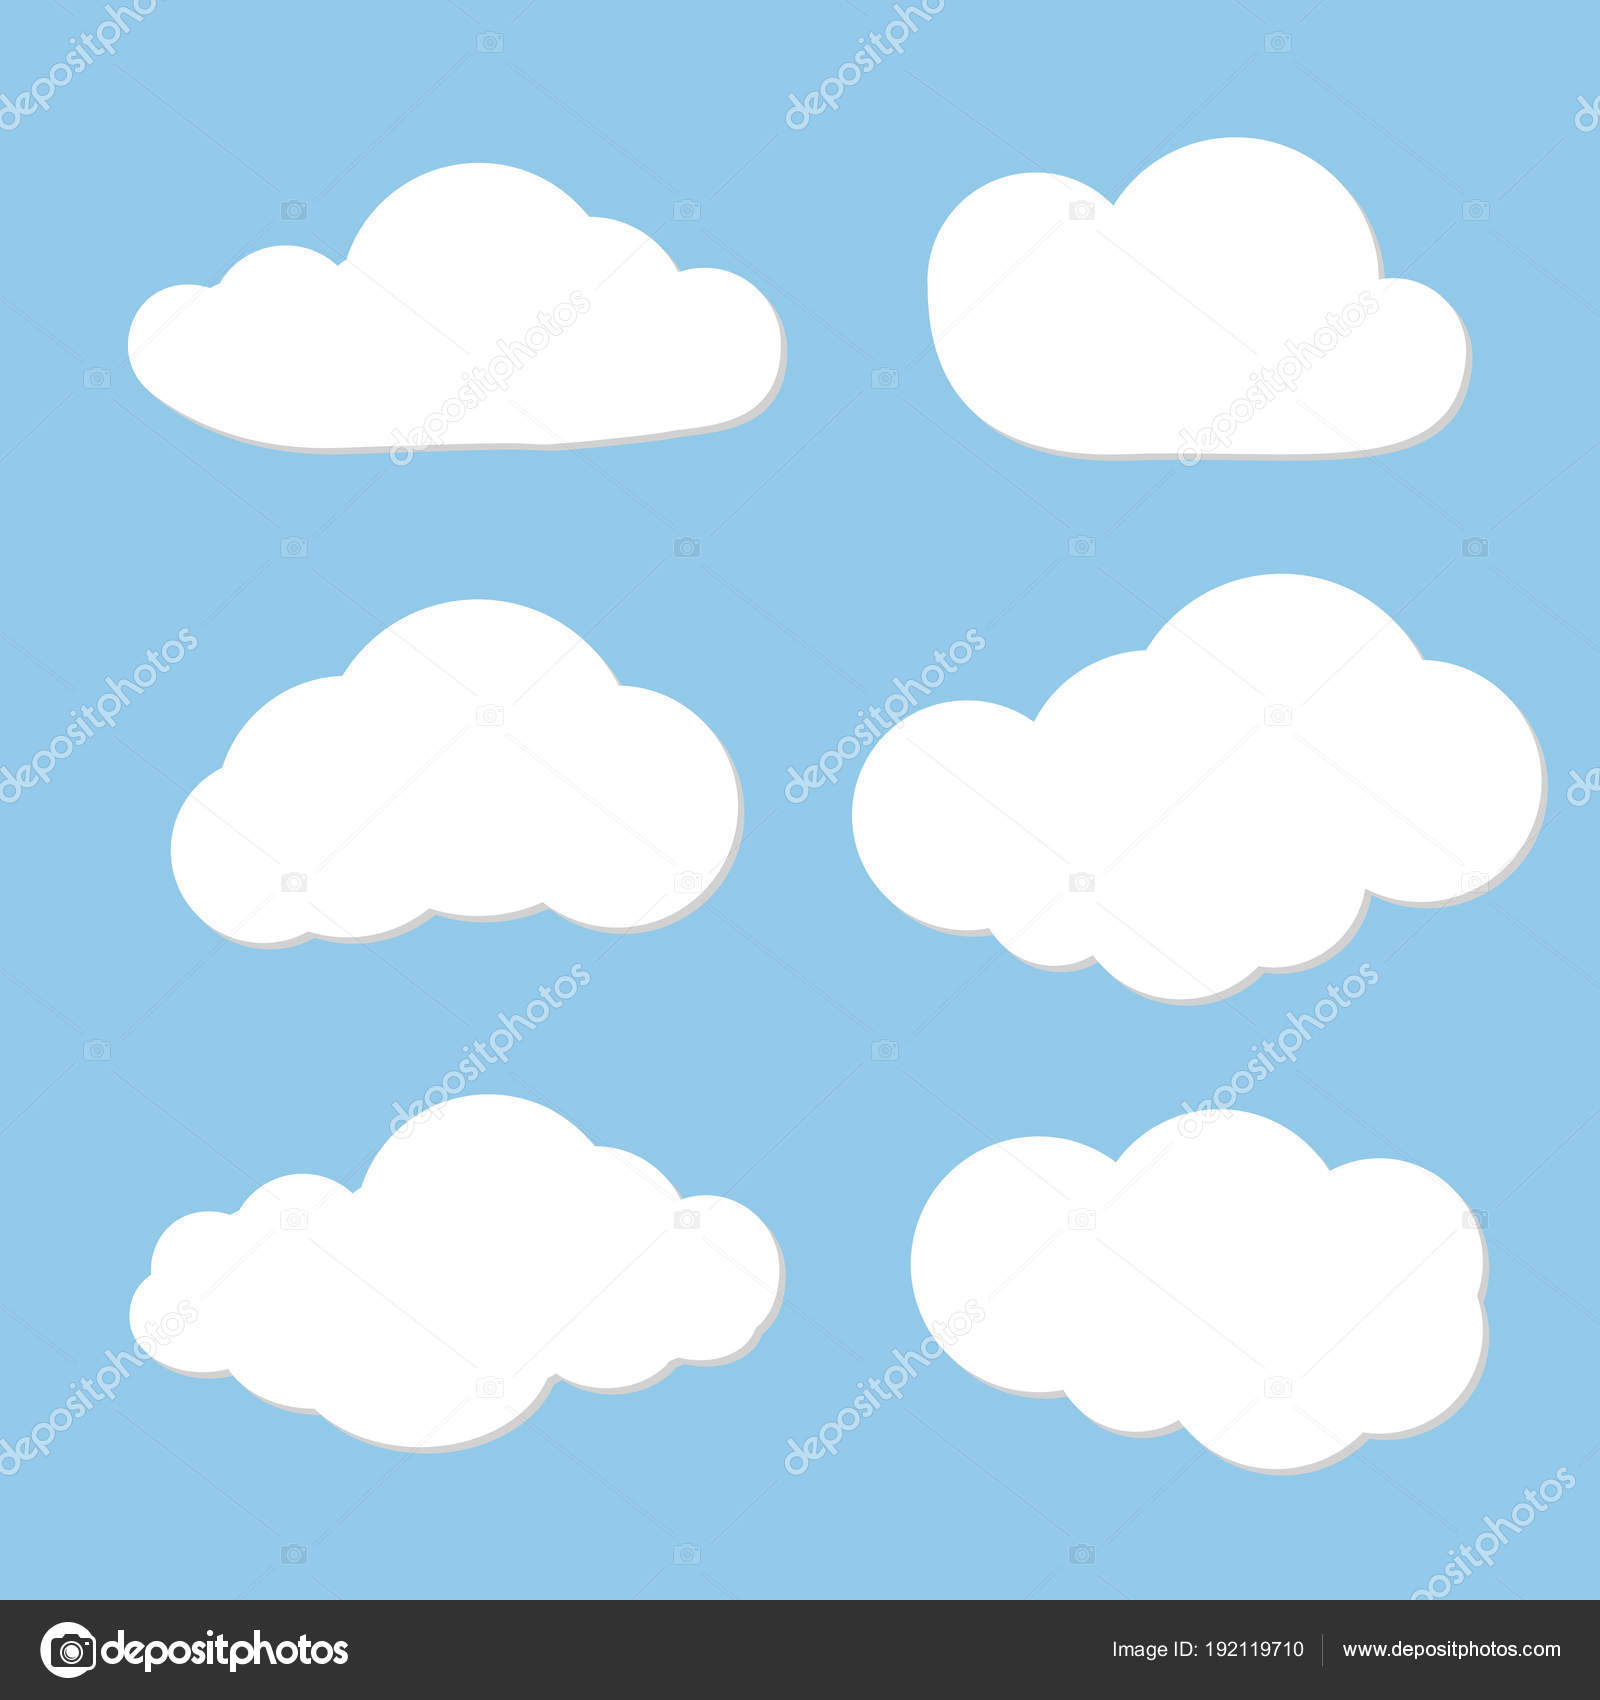 Cloud vector design  Can use as speech clouds for network  Cloud on